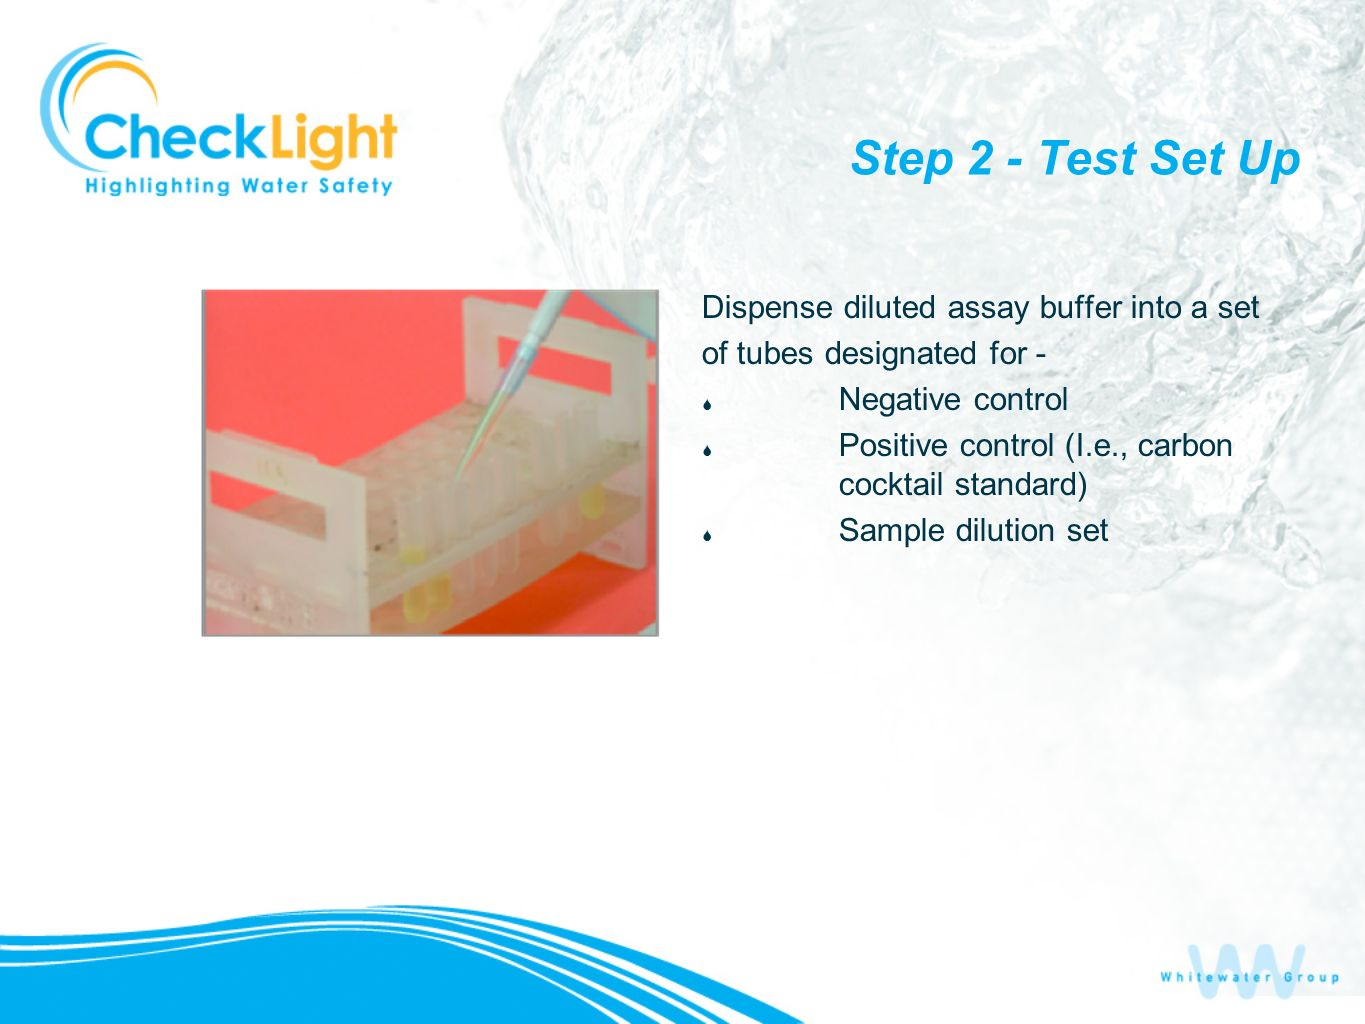 Step 2 - Test Set Up Dispense diluted assay buffer into a set